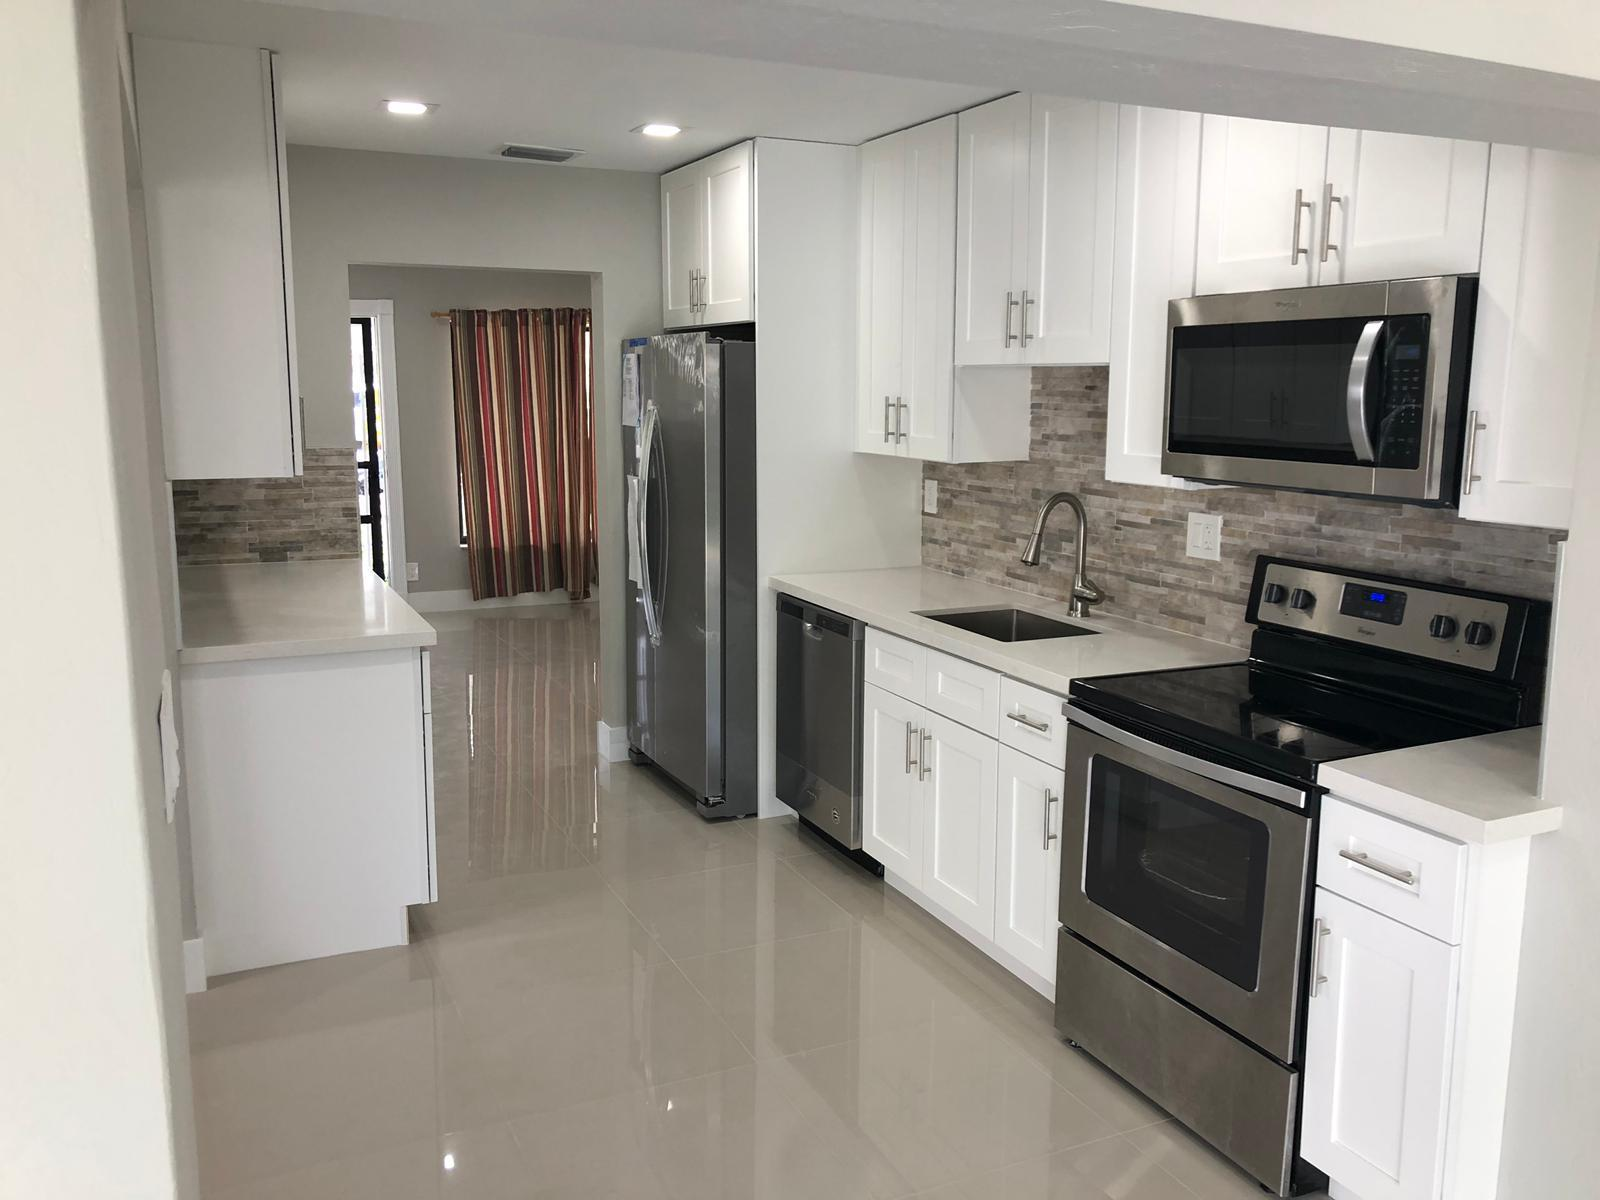 210 NW 55TH ST (21)